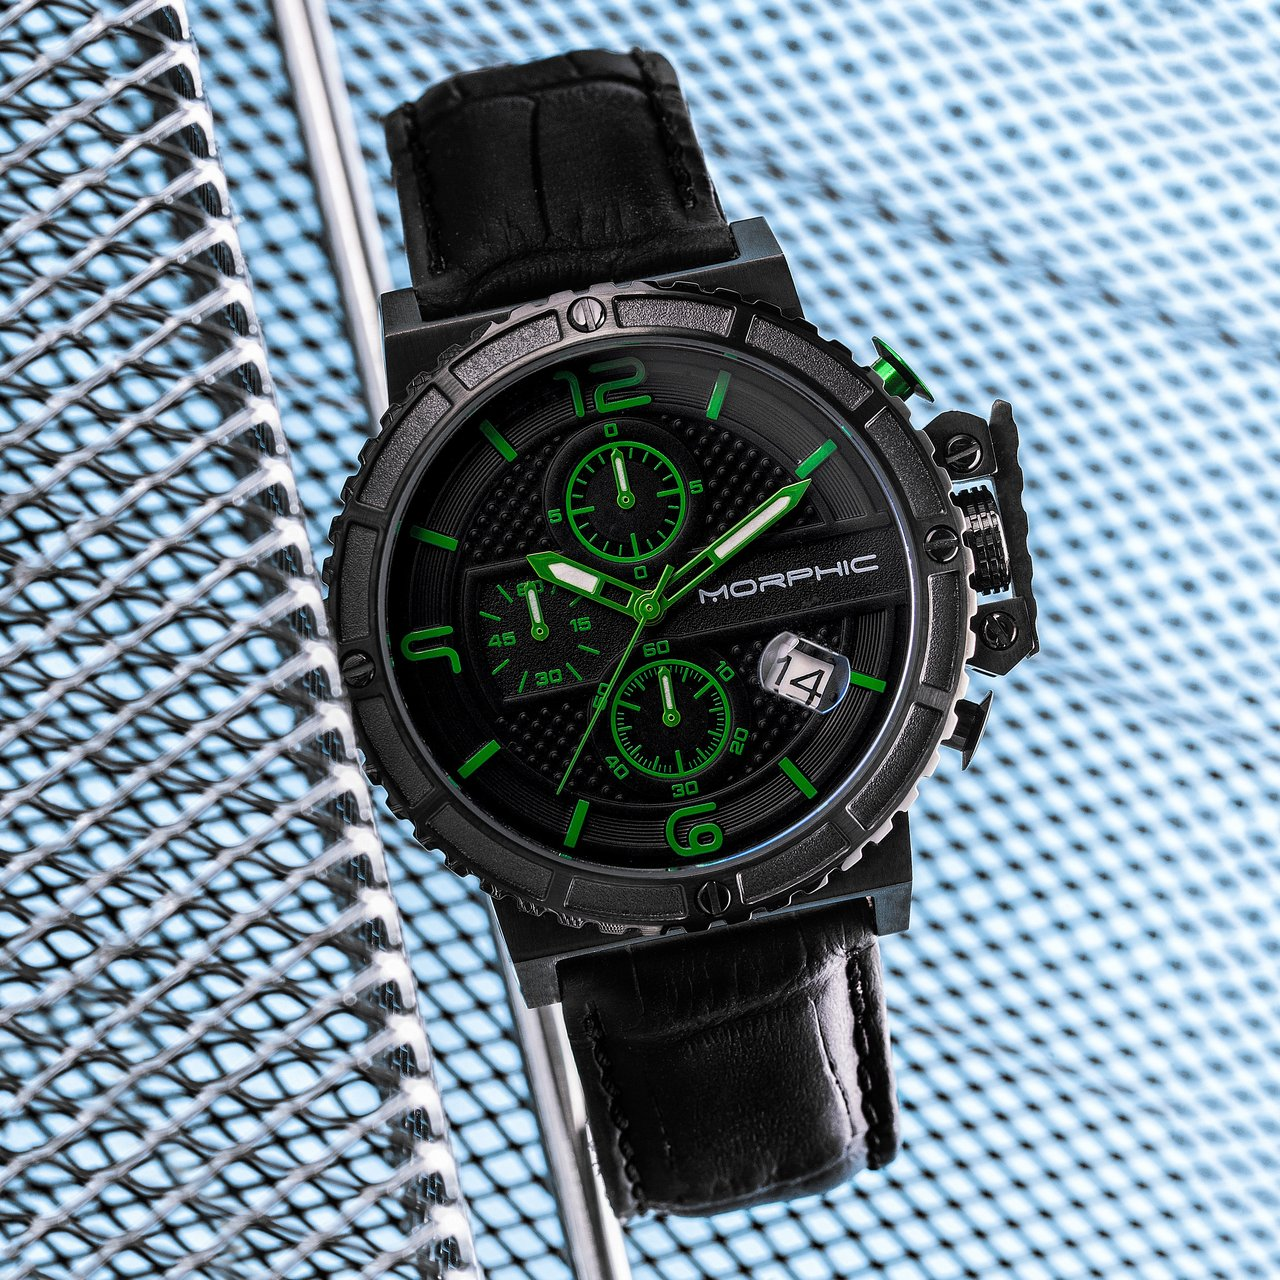 Morphic M50 Series Chronograph Crocodile-Embossed Leather-Band Date Watch